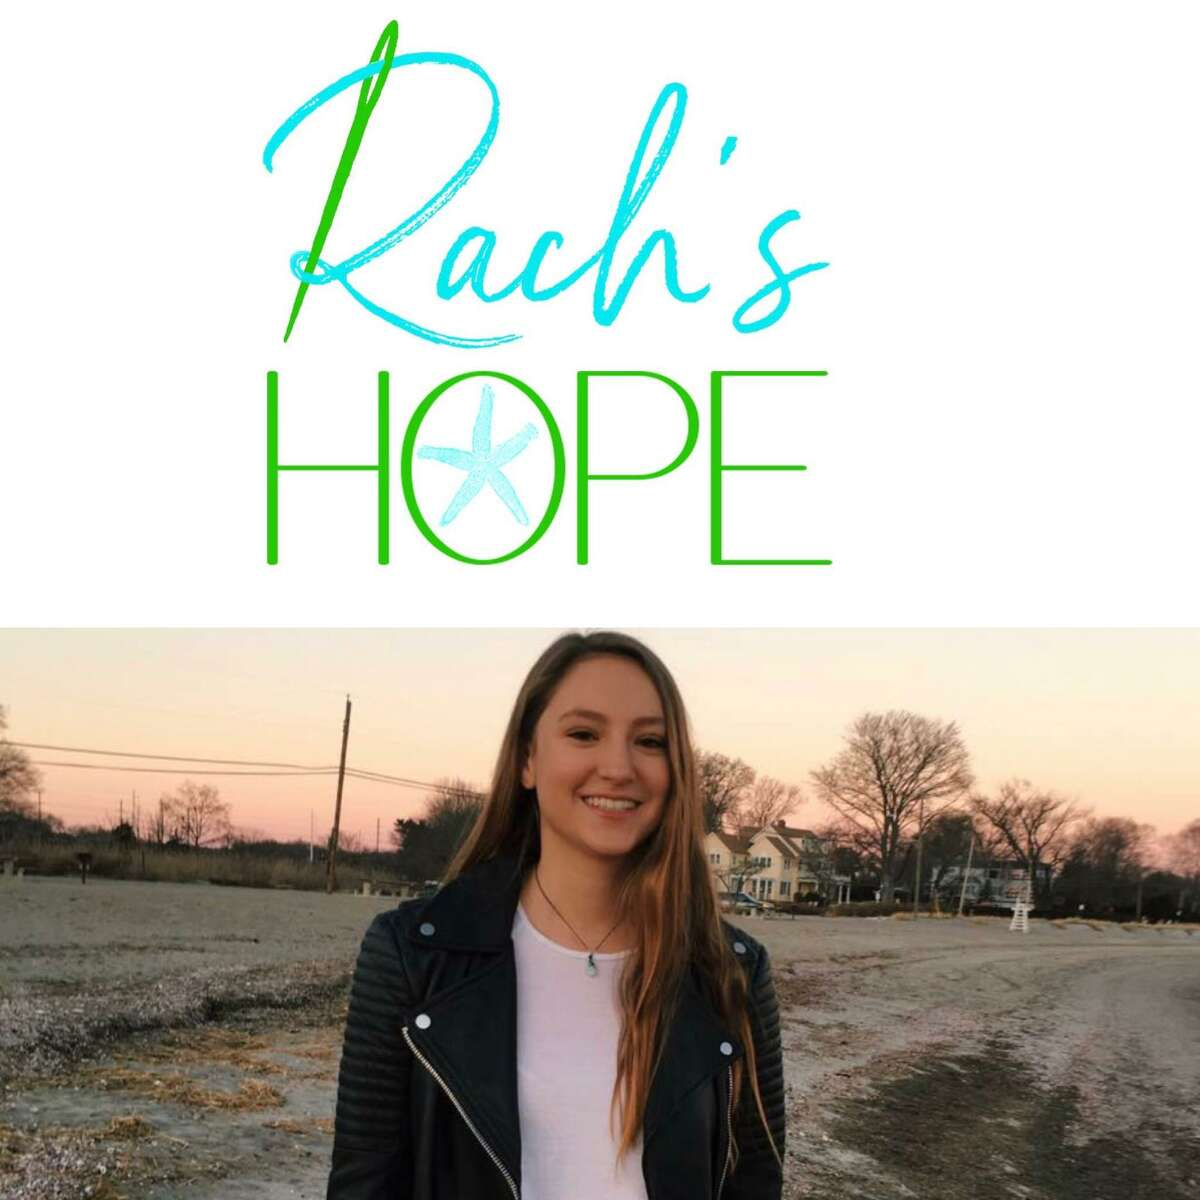 Lisa and Alan Doran started the nonprofit Rach's Hope to to help other families weather the storm of critical illness in honor of their daughter, Rachel Doran, who died of a critical illness last summer.